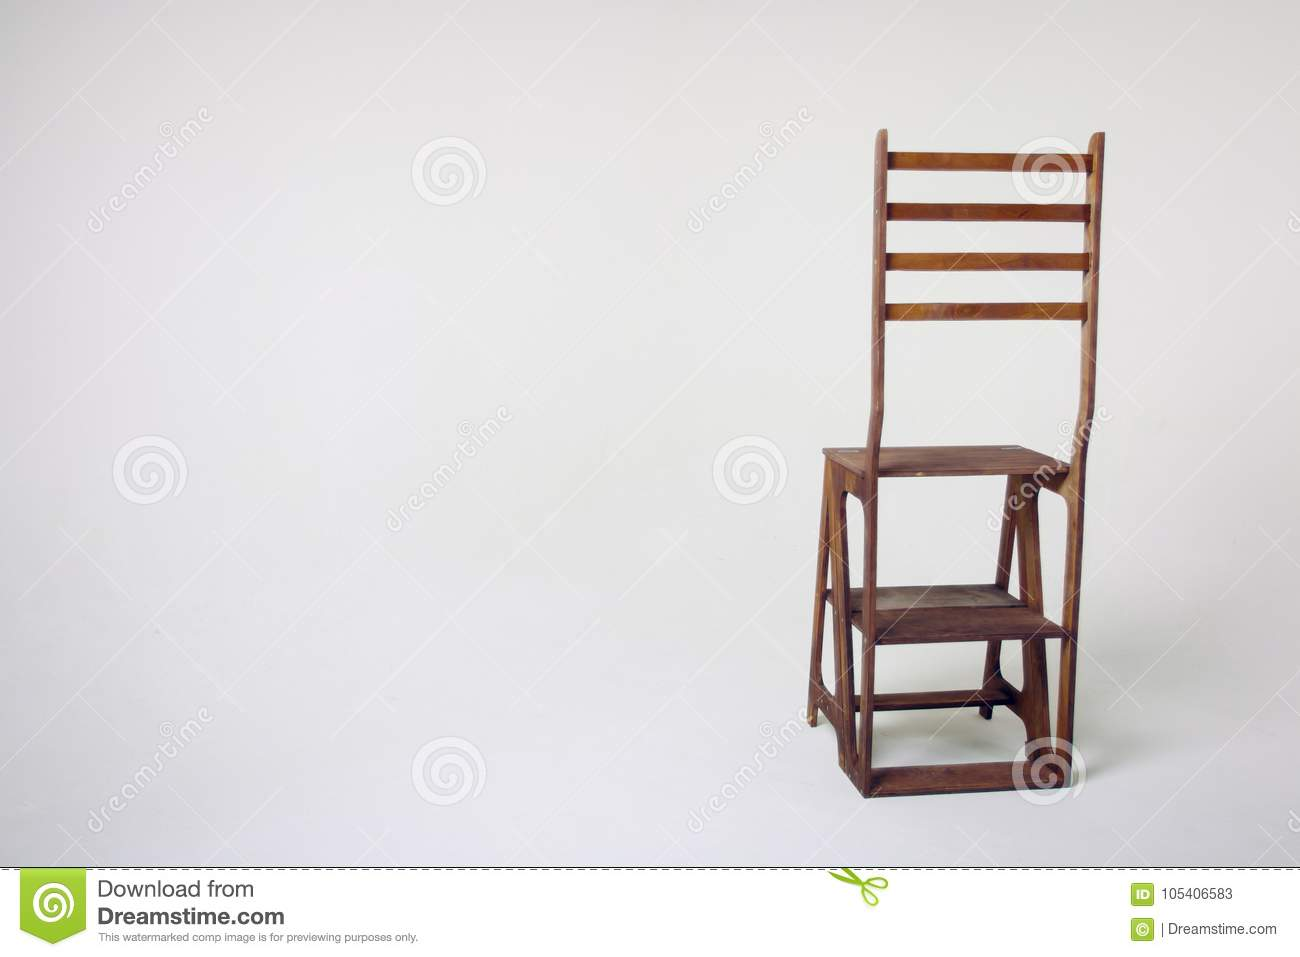 unusual chair legs pink club wooden on a white background stock image of an cycramram cycramrame studio light in